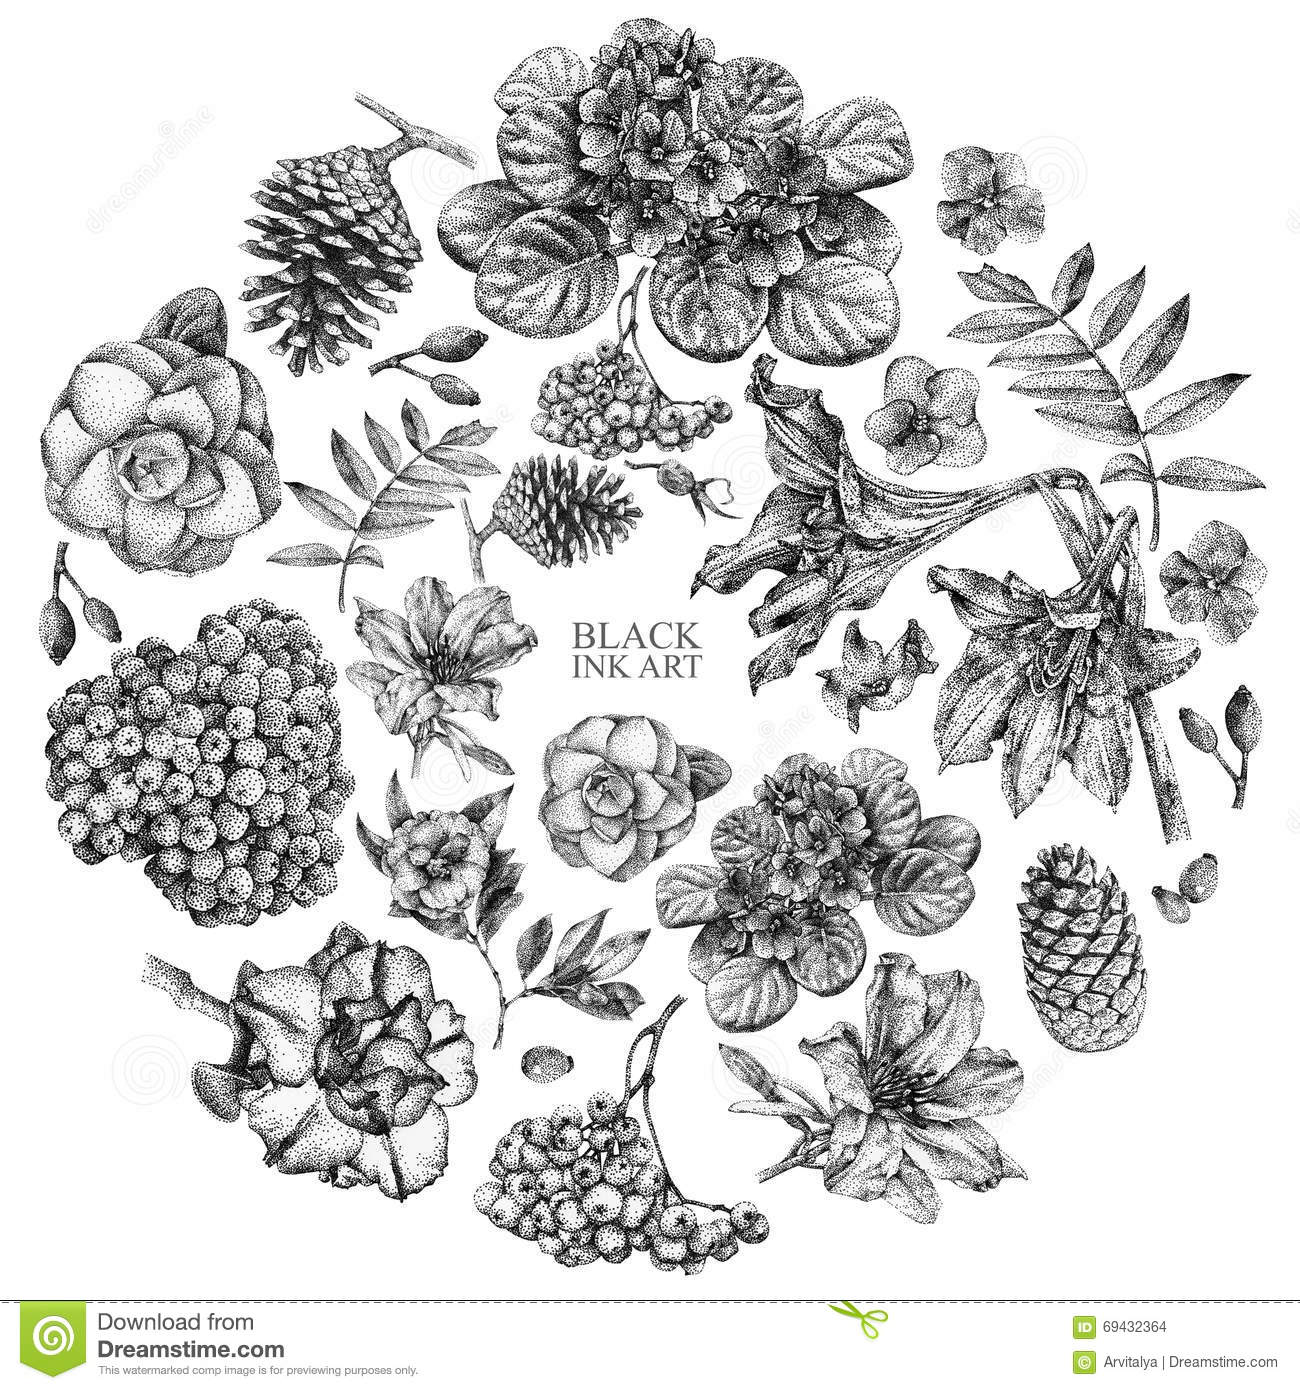 Set of different spring flowers and plants drawn by hand stock download set of different spring flowers and plants drawn by hand stock illustration illustration of mightylinksfo